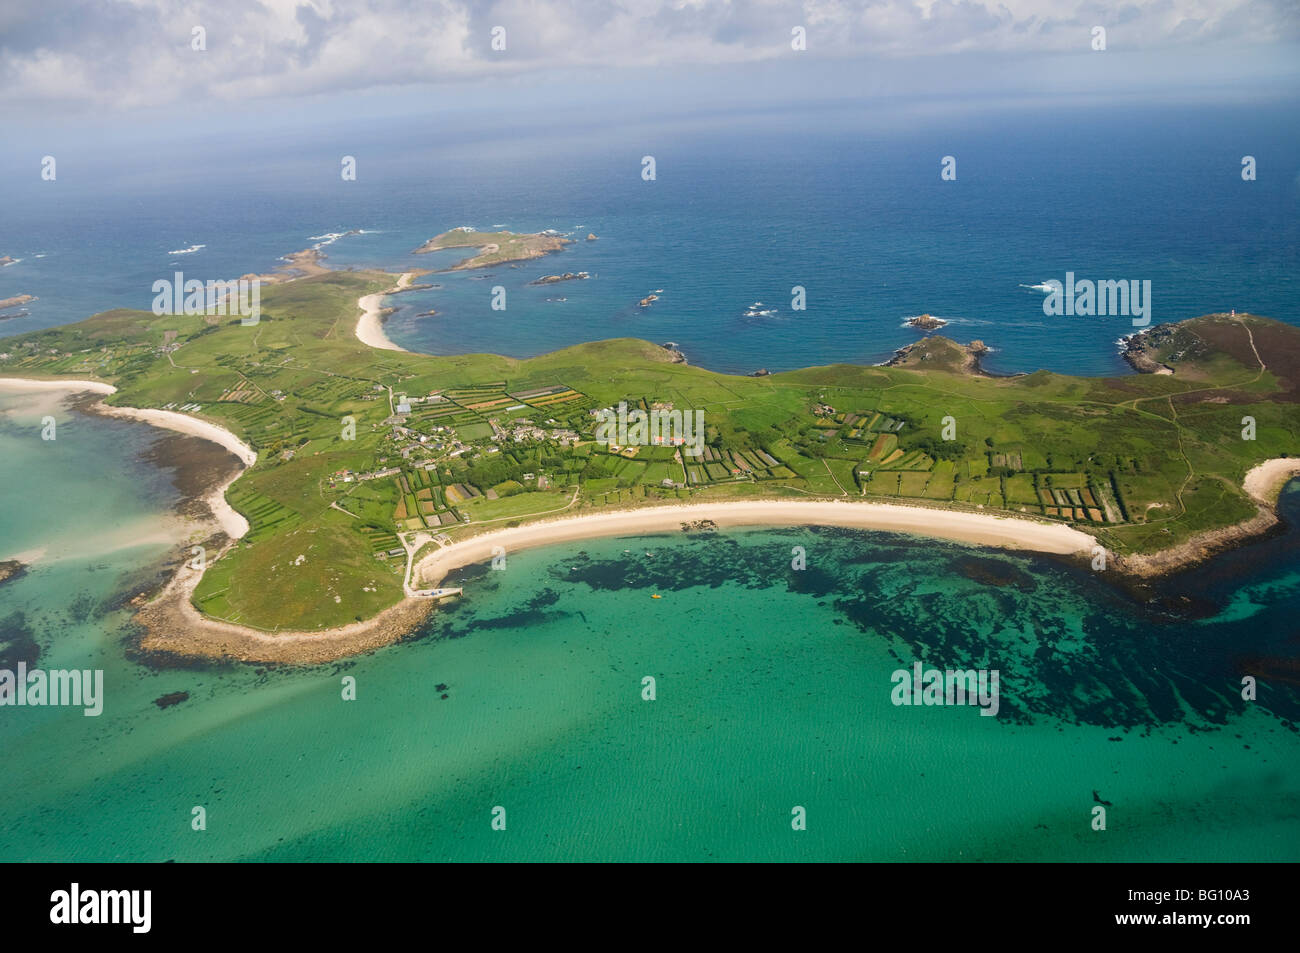 Aerial shot of St. Martins, Isles of Scilly, Cornwall, United Kingdom, Europe - Stock Image